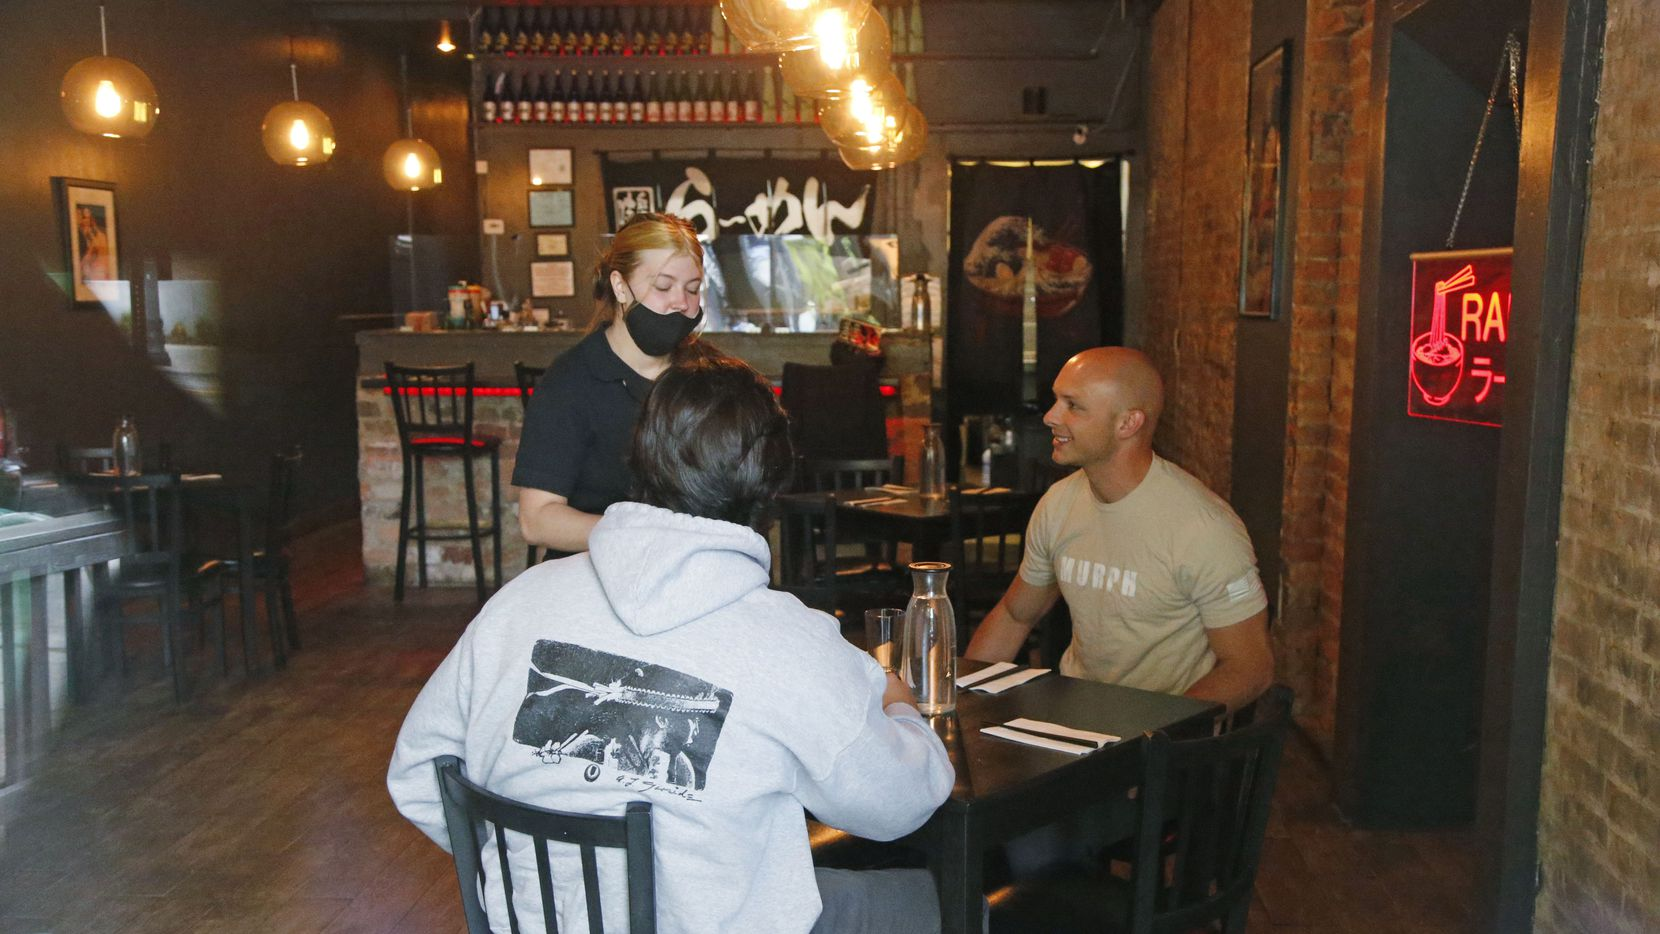 A server took an order at the Ramen Bar on May 1 in Salt Lake City. Shani and Serge Oveson were excited to reopen dine-in seating at their small downtown Salt Lake City restaurant that had seen an 85% drop in sales since mid-March after eateries across Utah were limited to offering takeout orders to prevent the spread of the coronavirus.